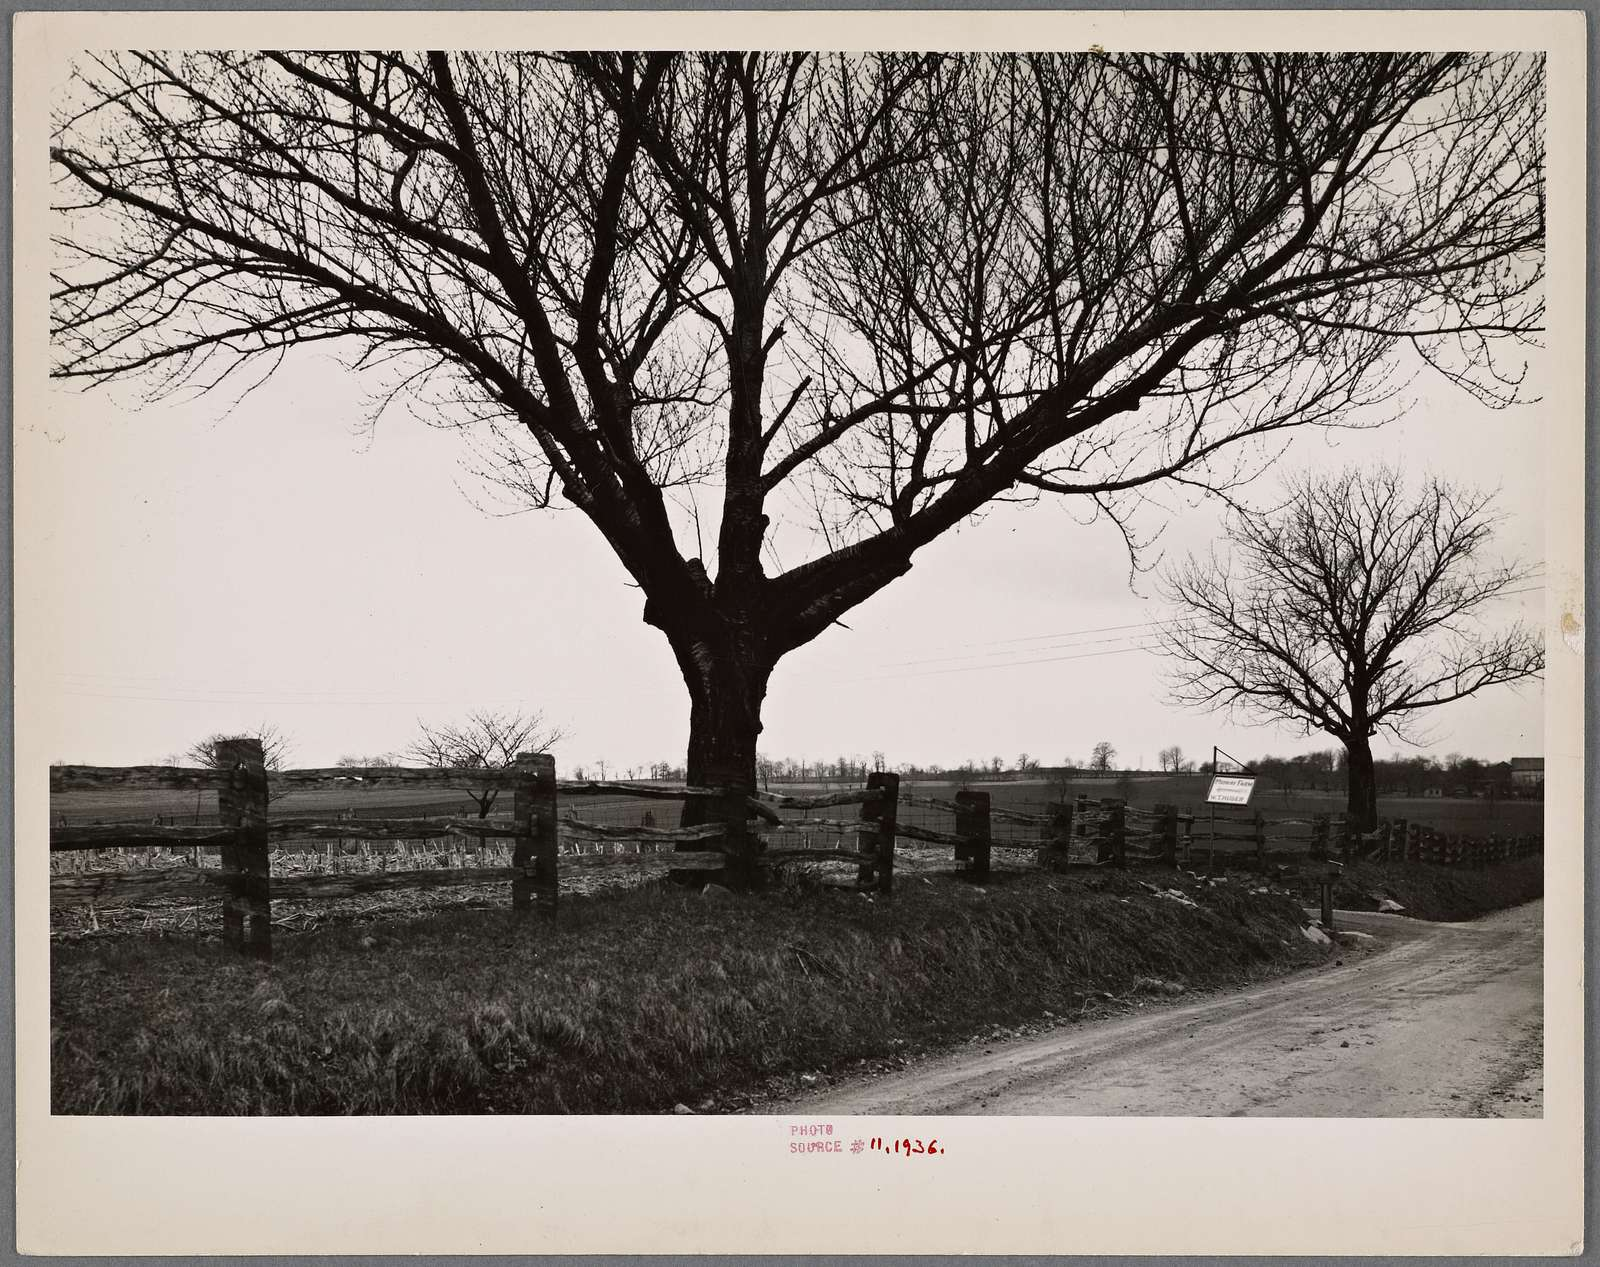 Construction detail of fence near Bethlehem, Pennsylvania. The fence posts are state.